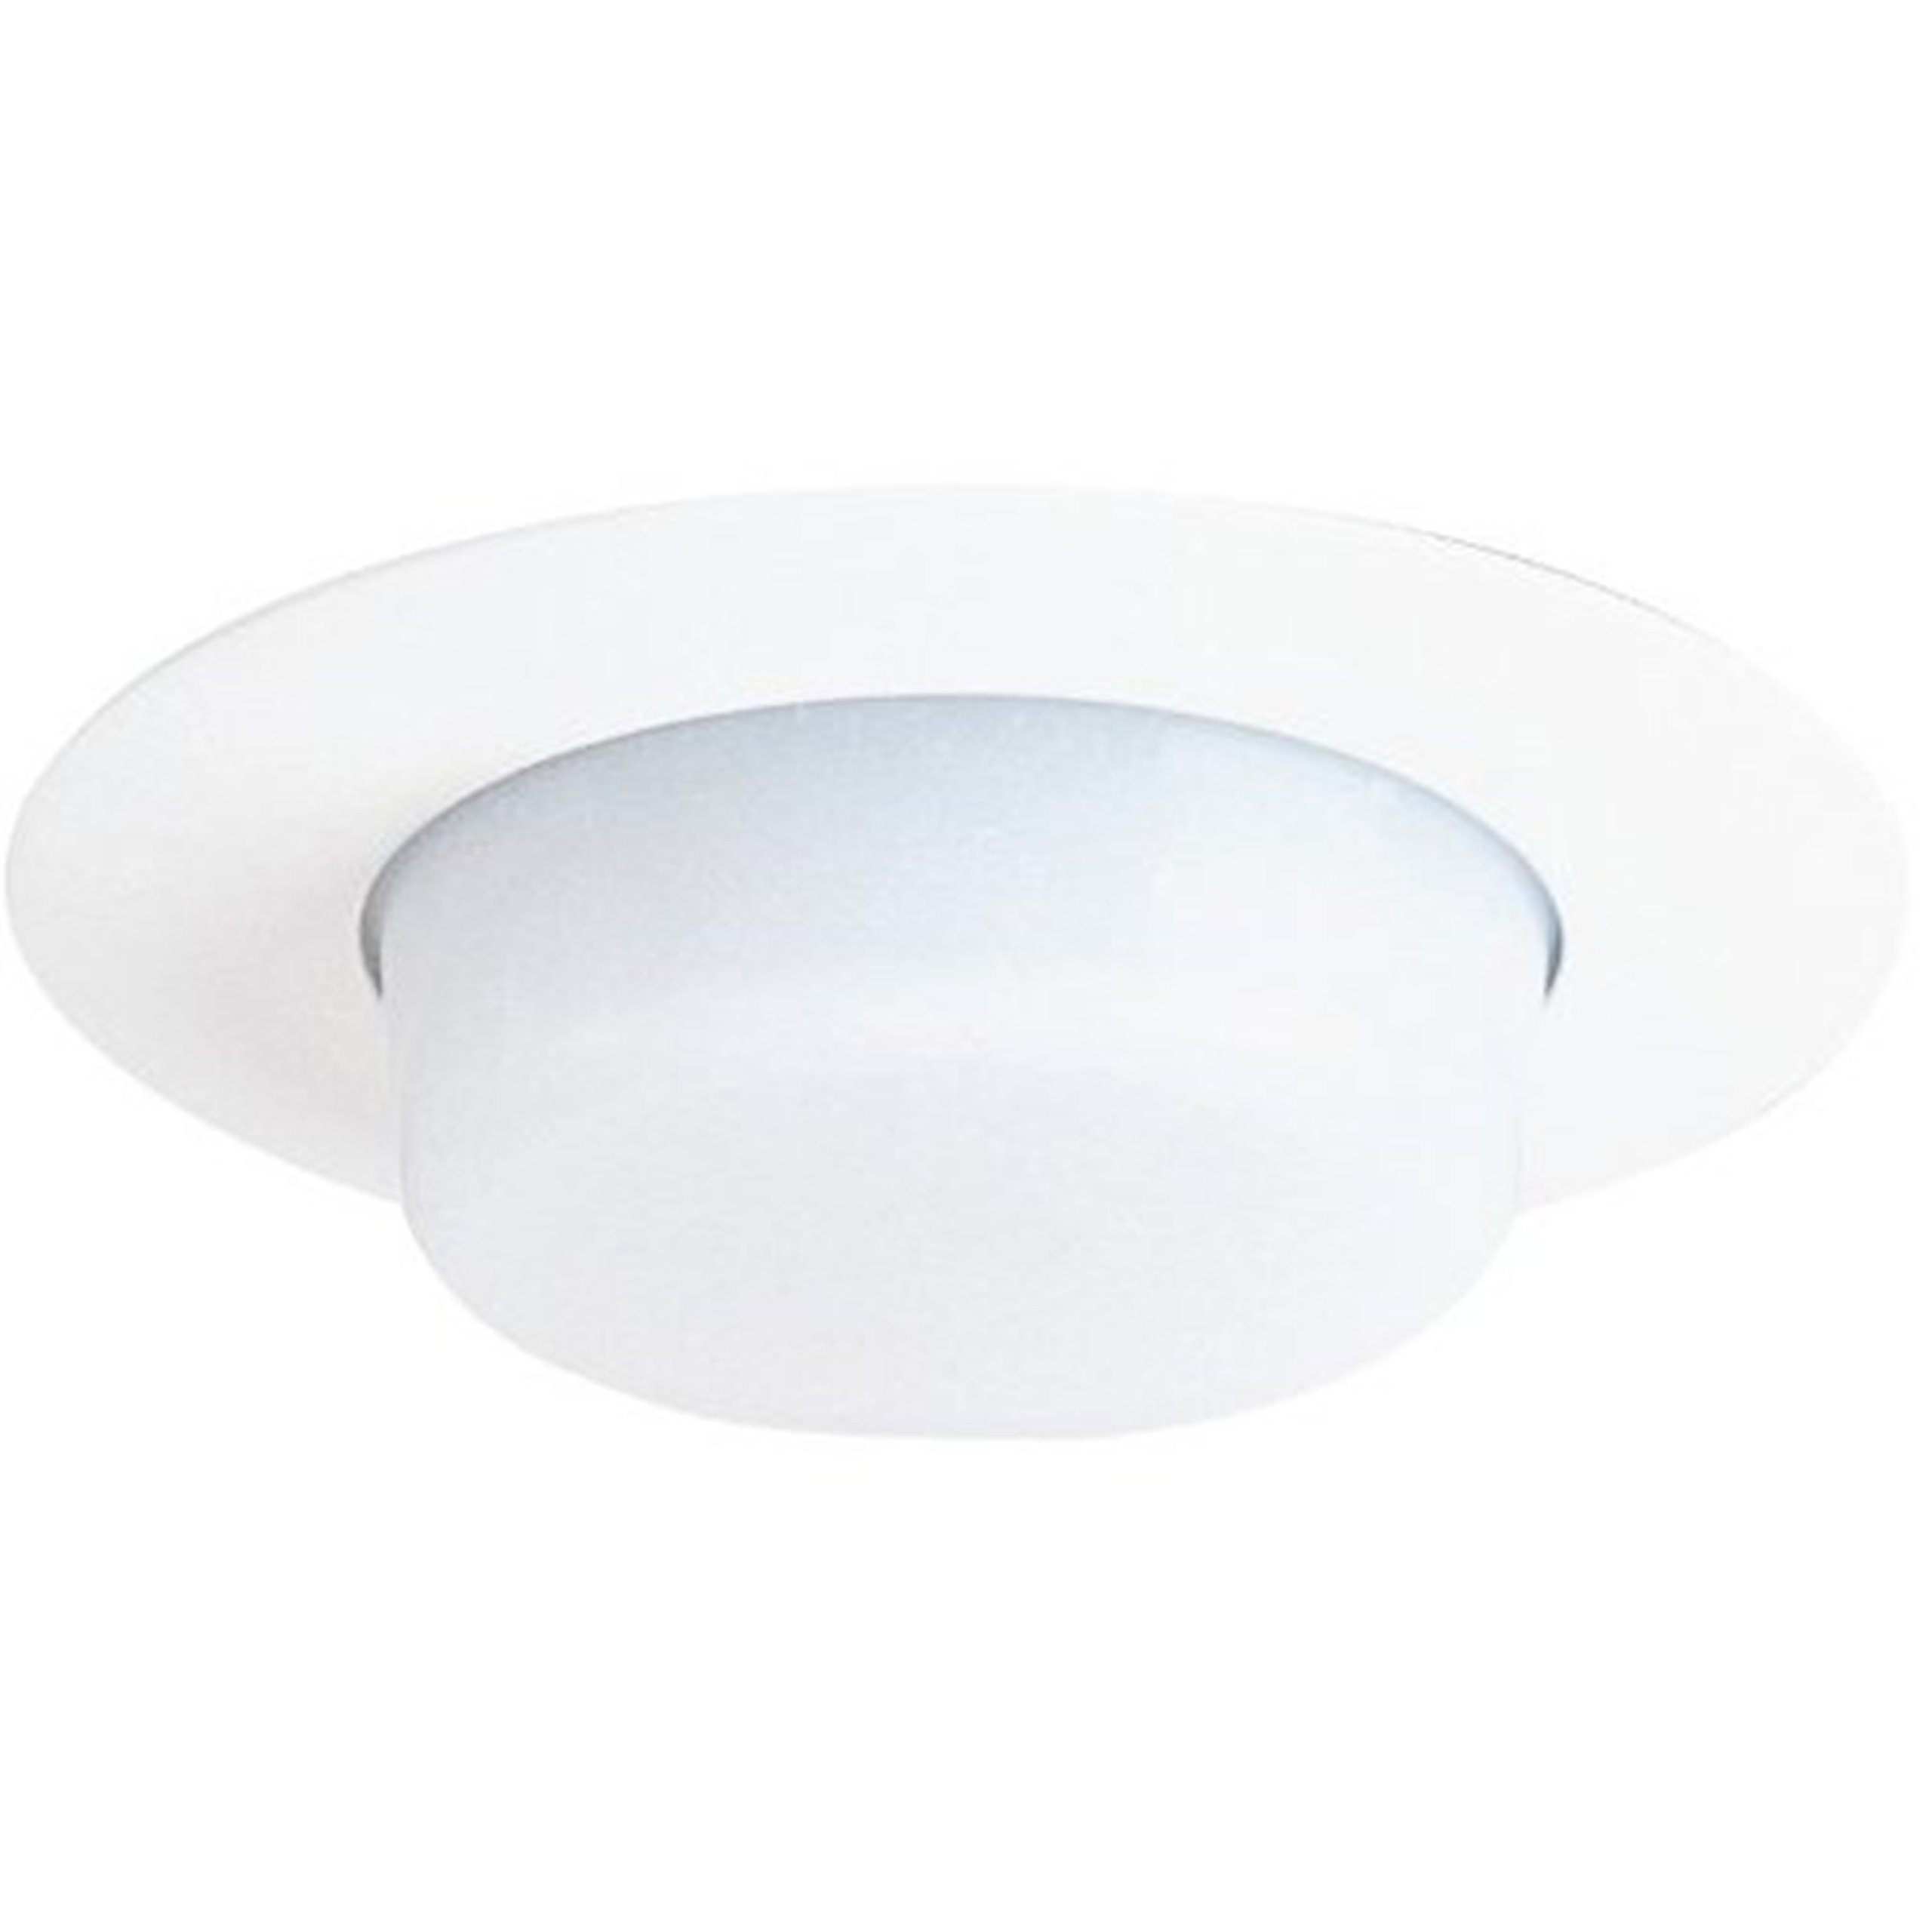 Juno Lighting 11-WH 4-Inch Drop Opal Trim, White with White Lens